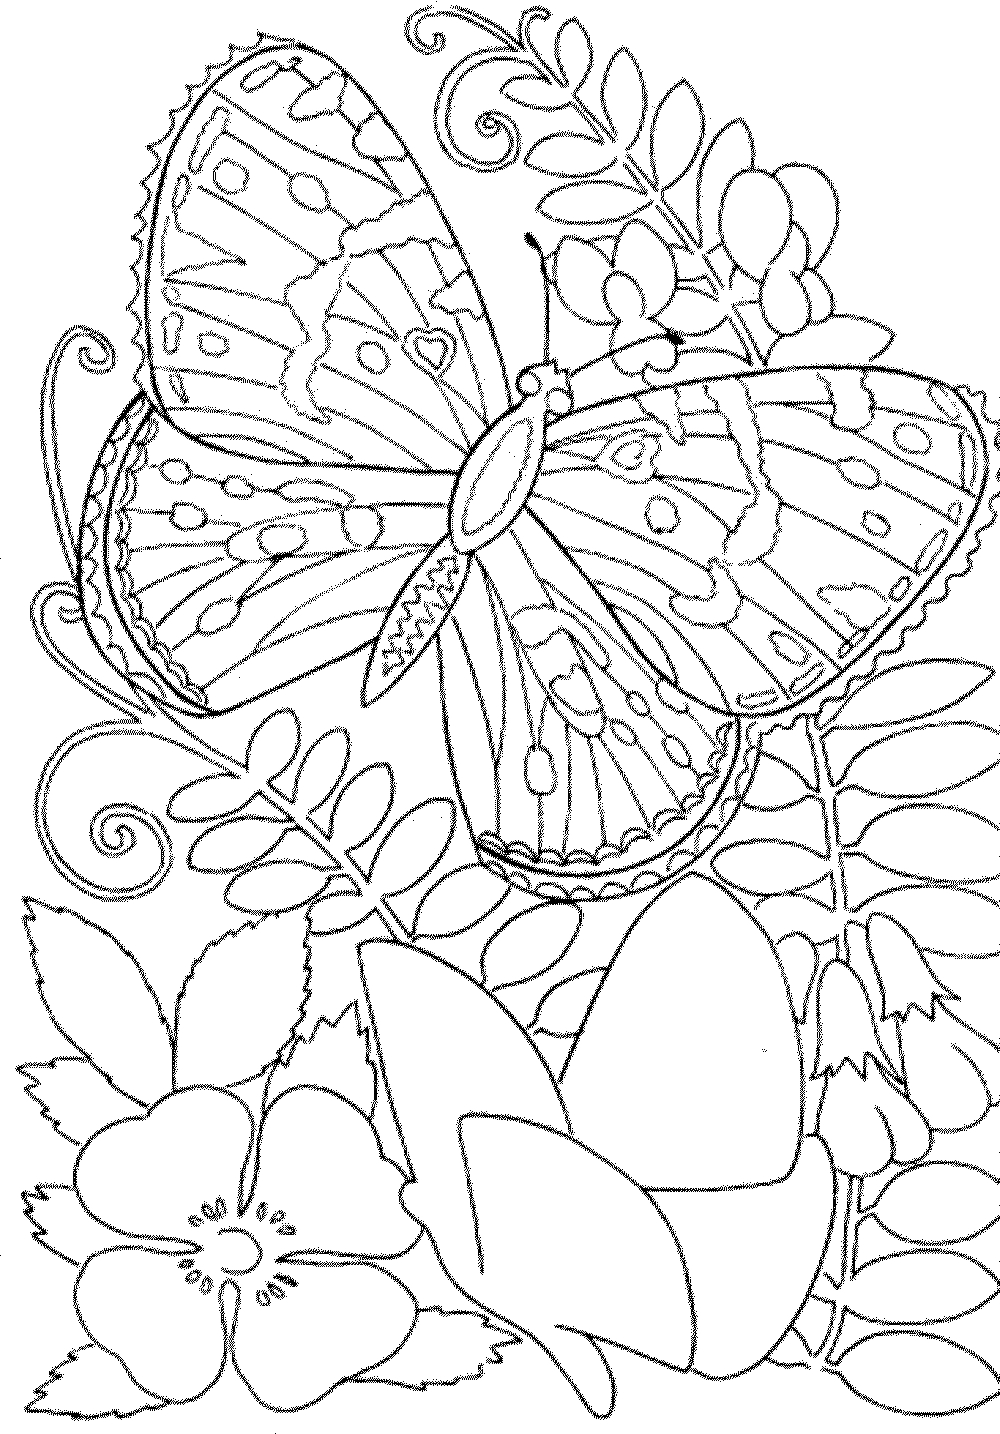 Coloring Pages for Adults to Print for Free Free Owl Adult Coloring Pages to Print Coloring Home